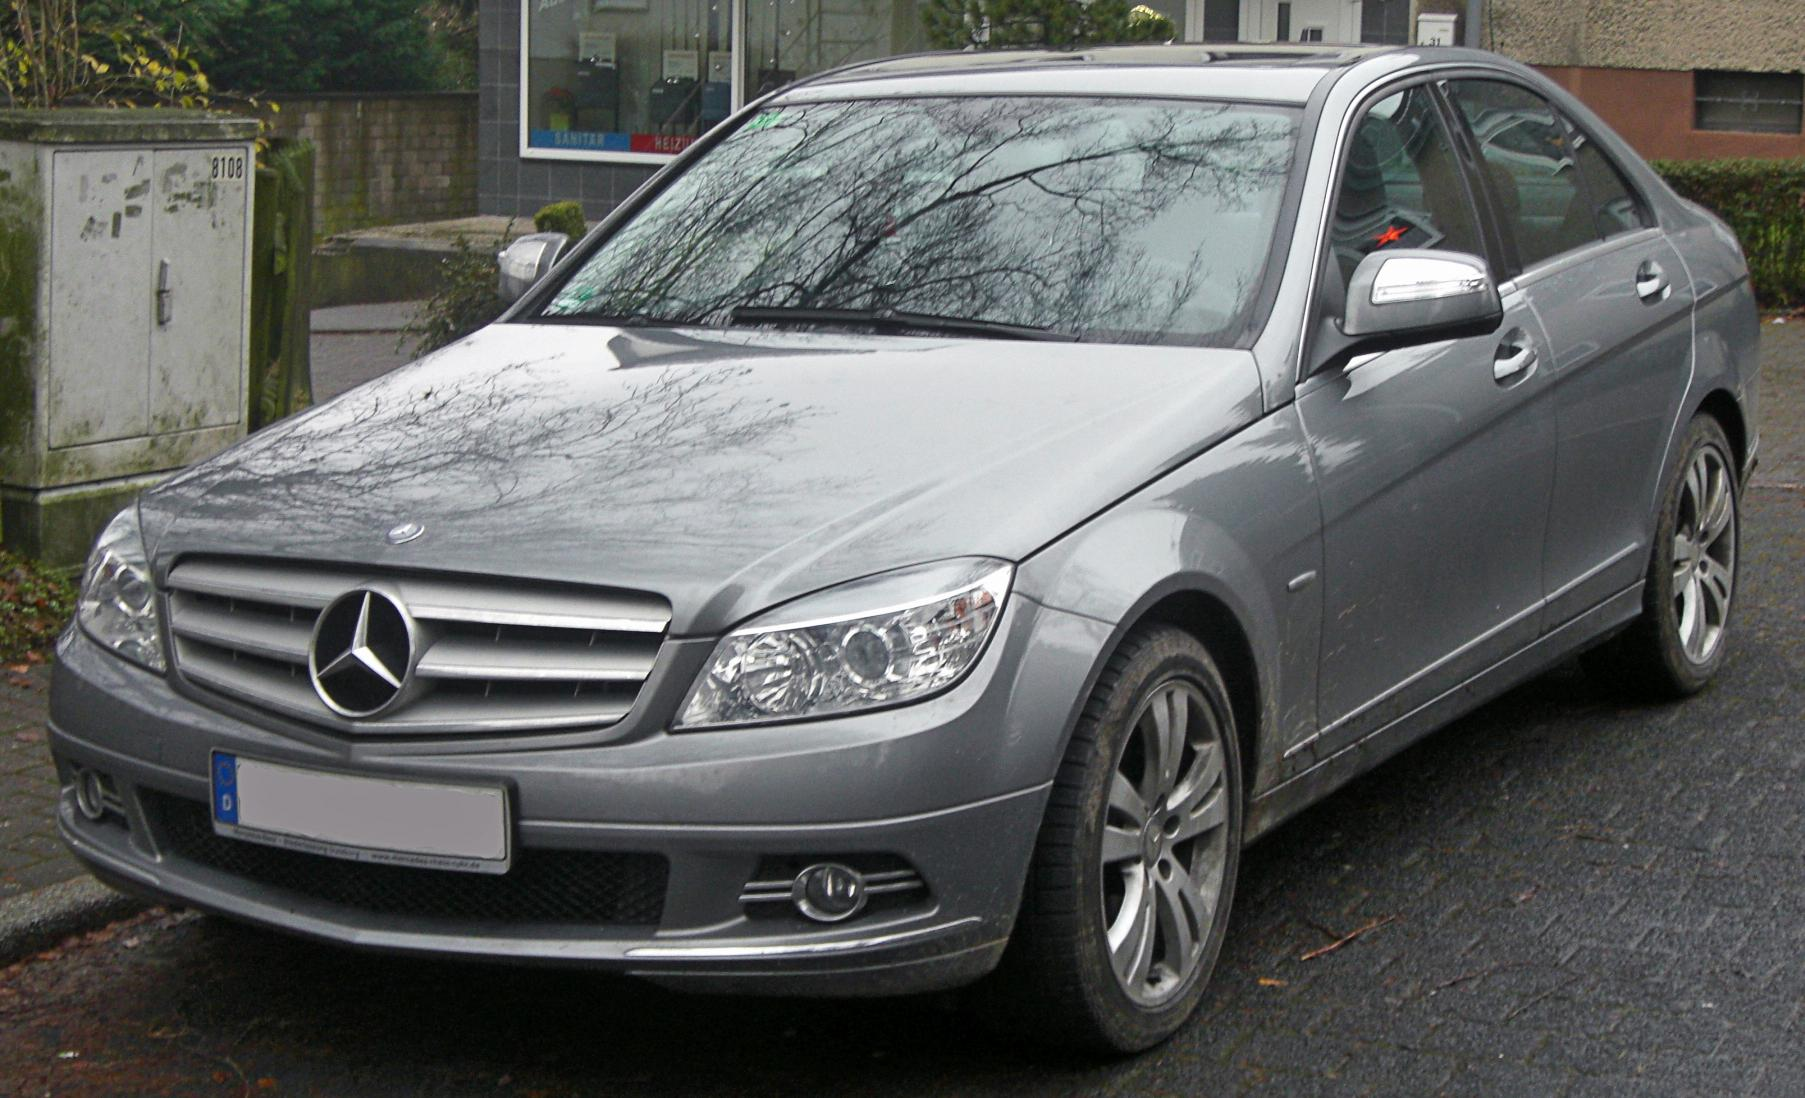 mercedes c 220 cdi avantgarde w204 seit 2007 front. Black Bedroom Furniture Sets. Home Design Ideas